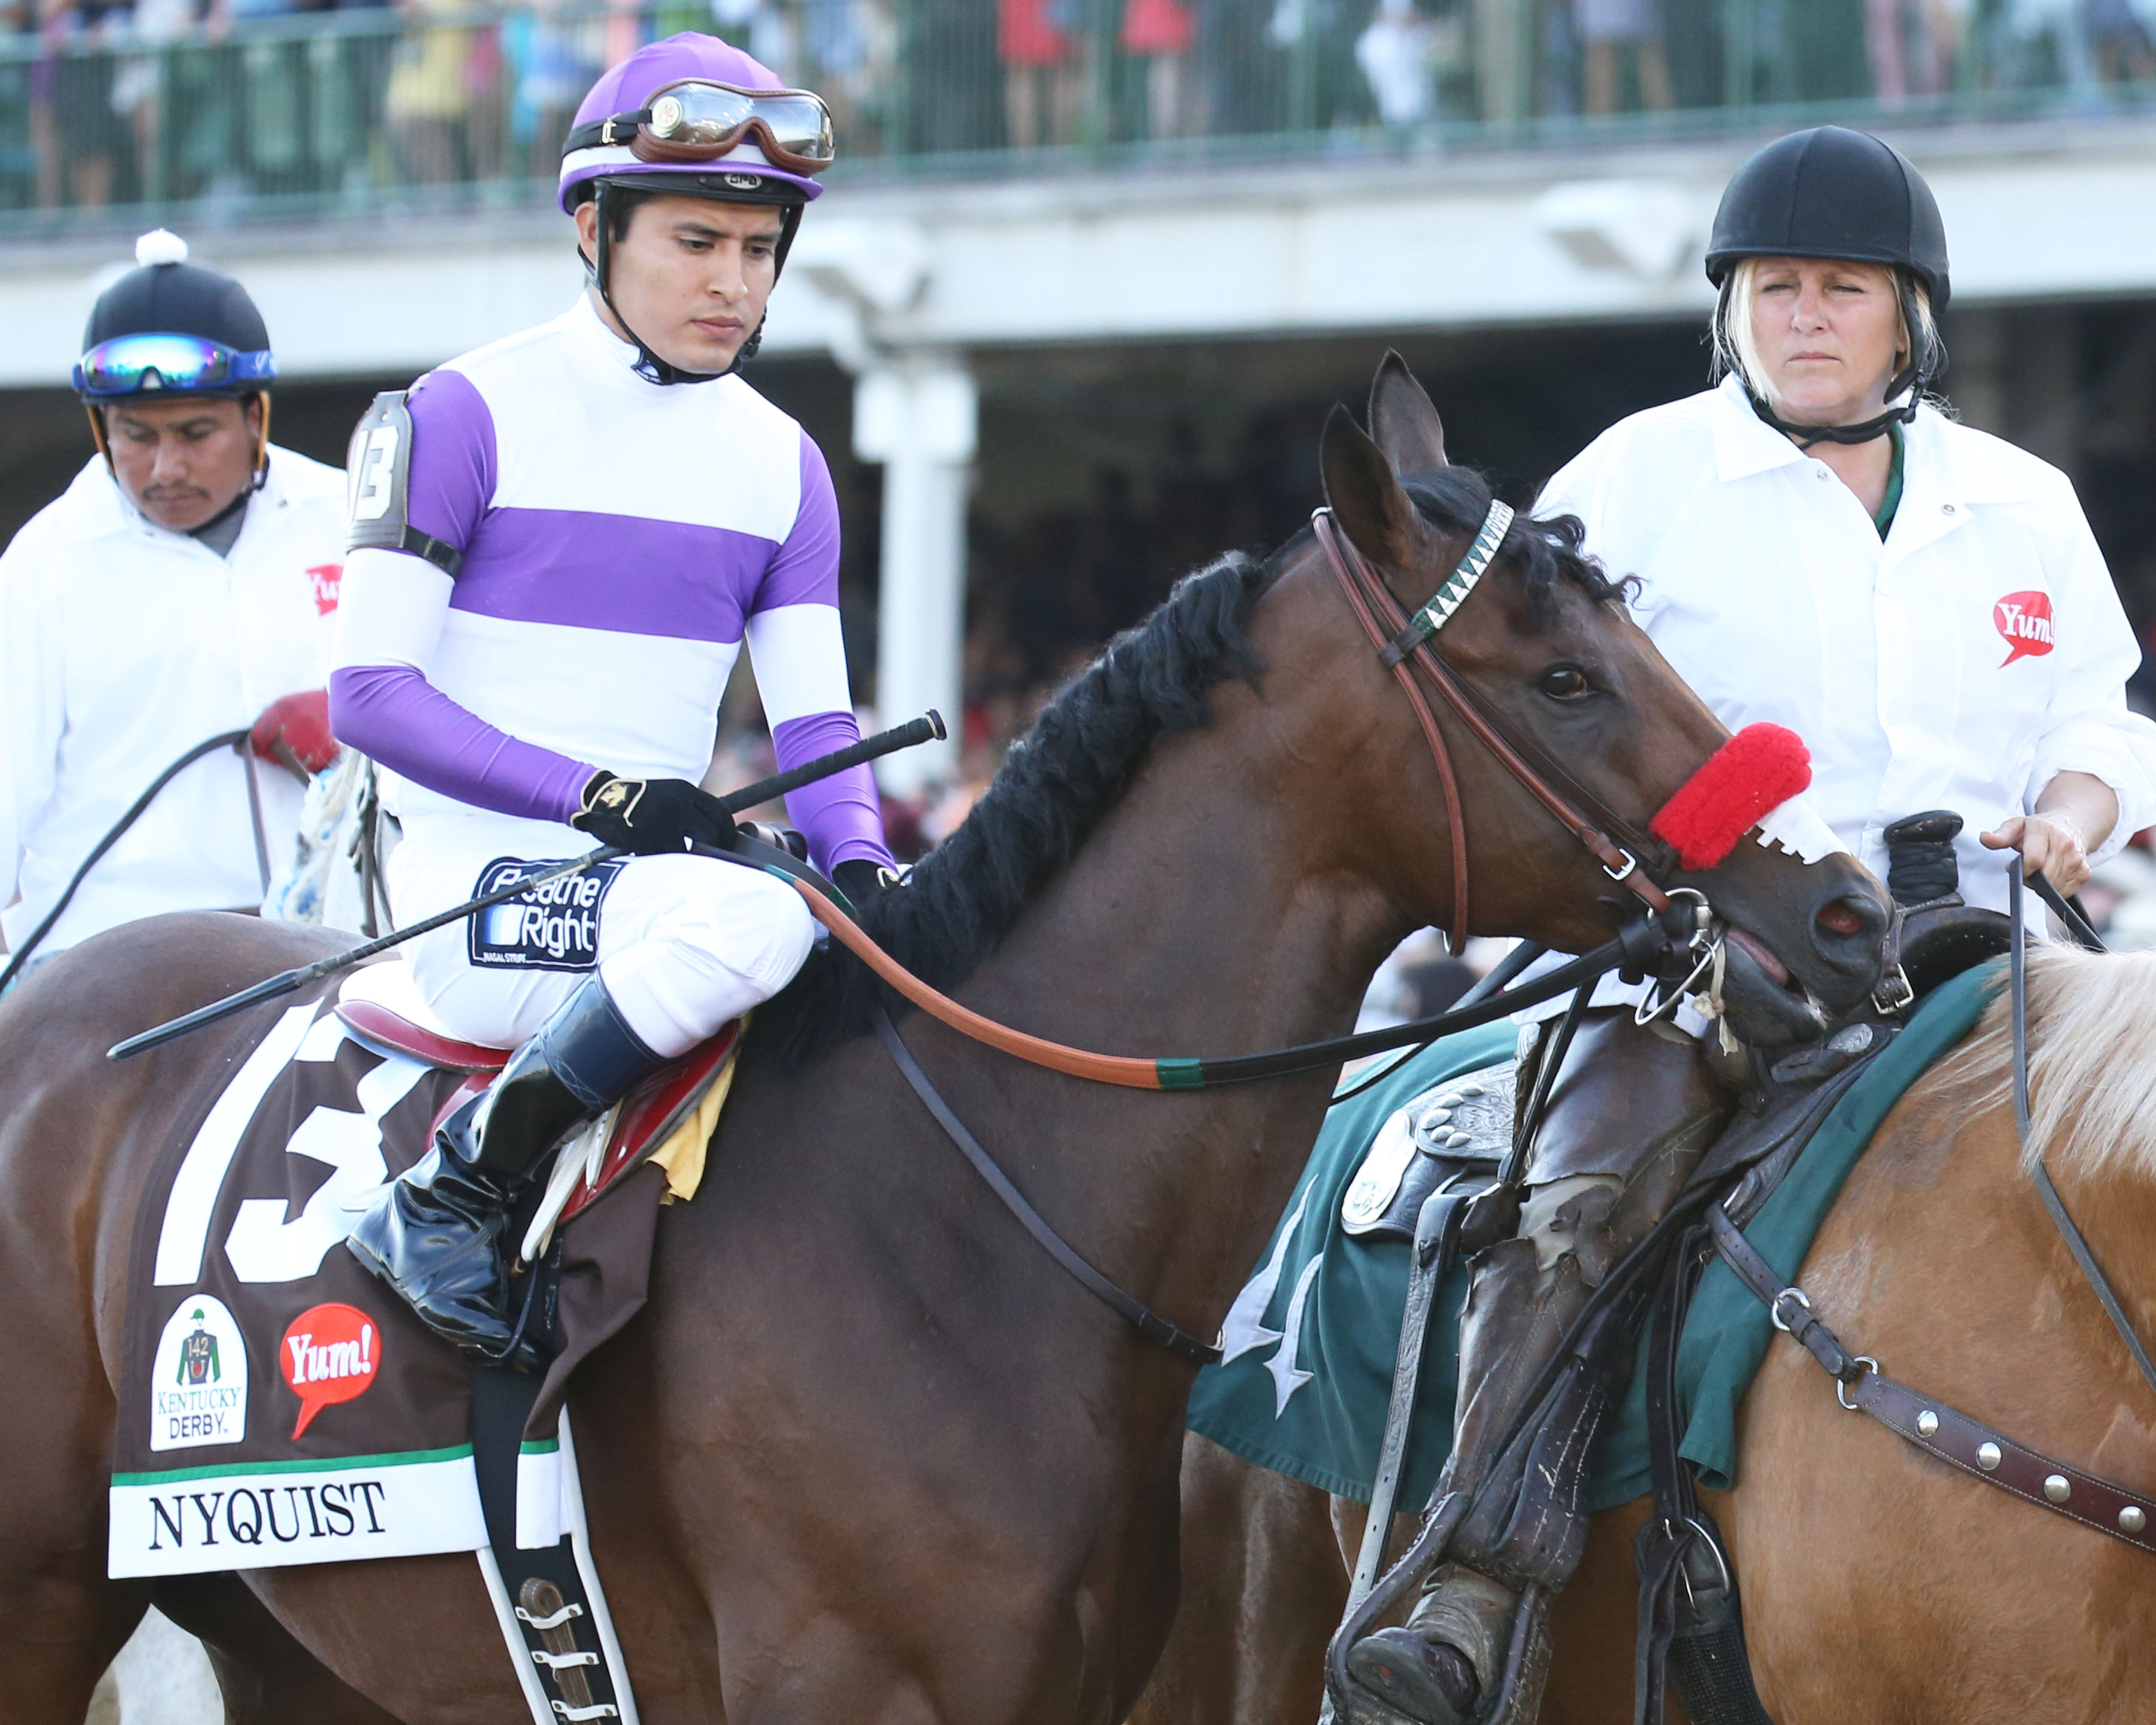 Kentucky Derby Winner Nyquist Recovering From Colic